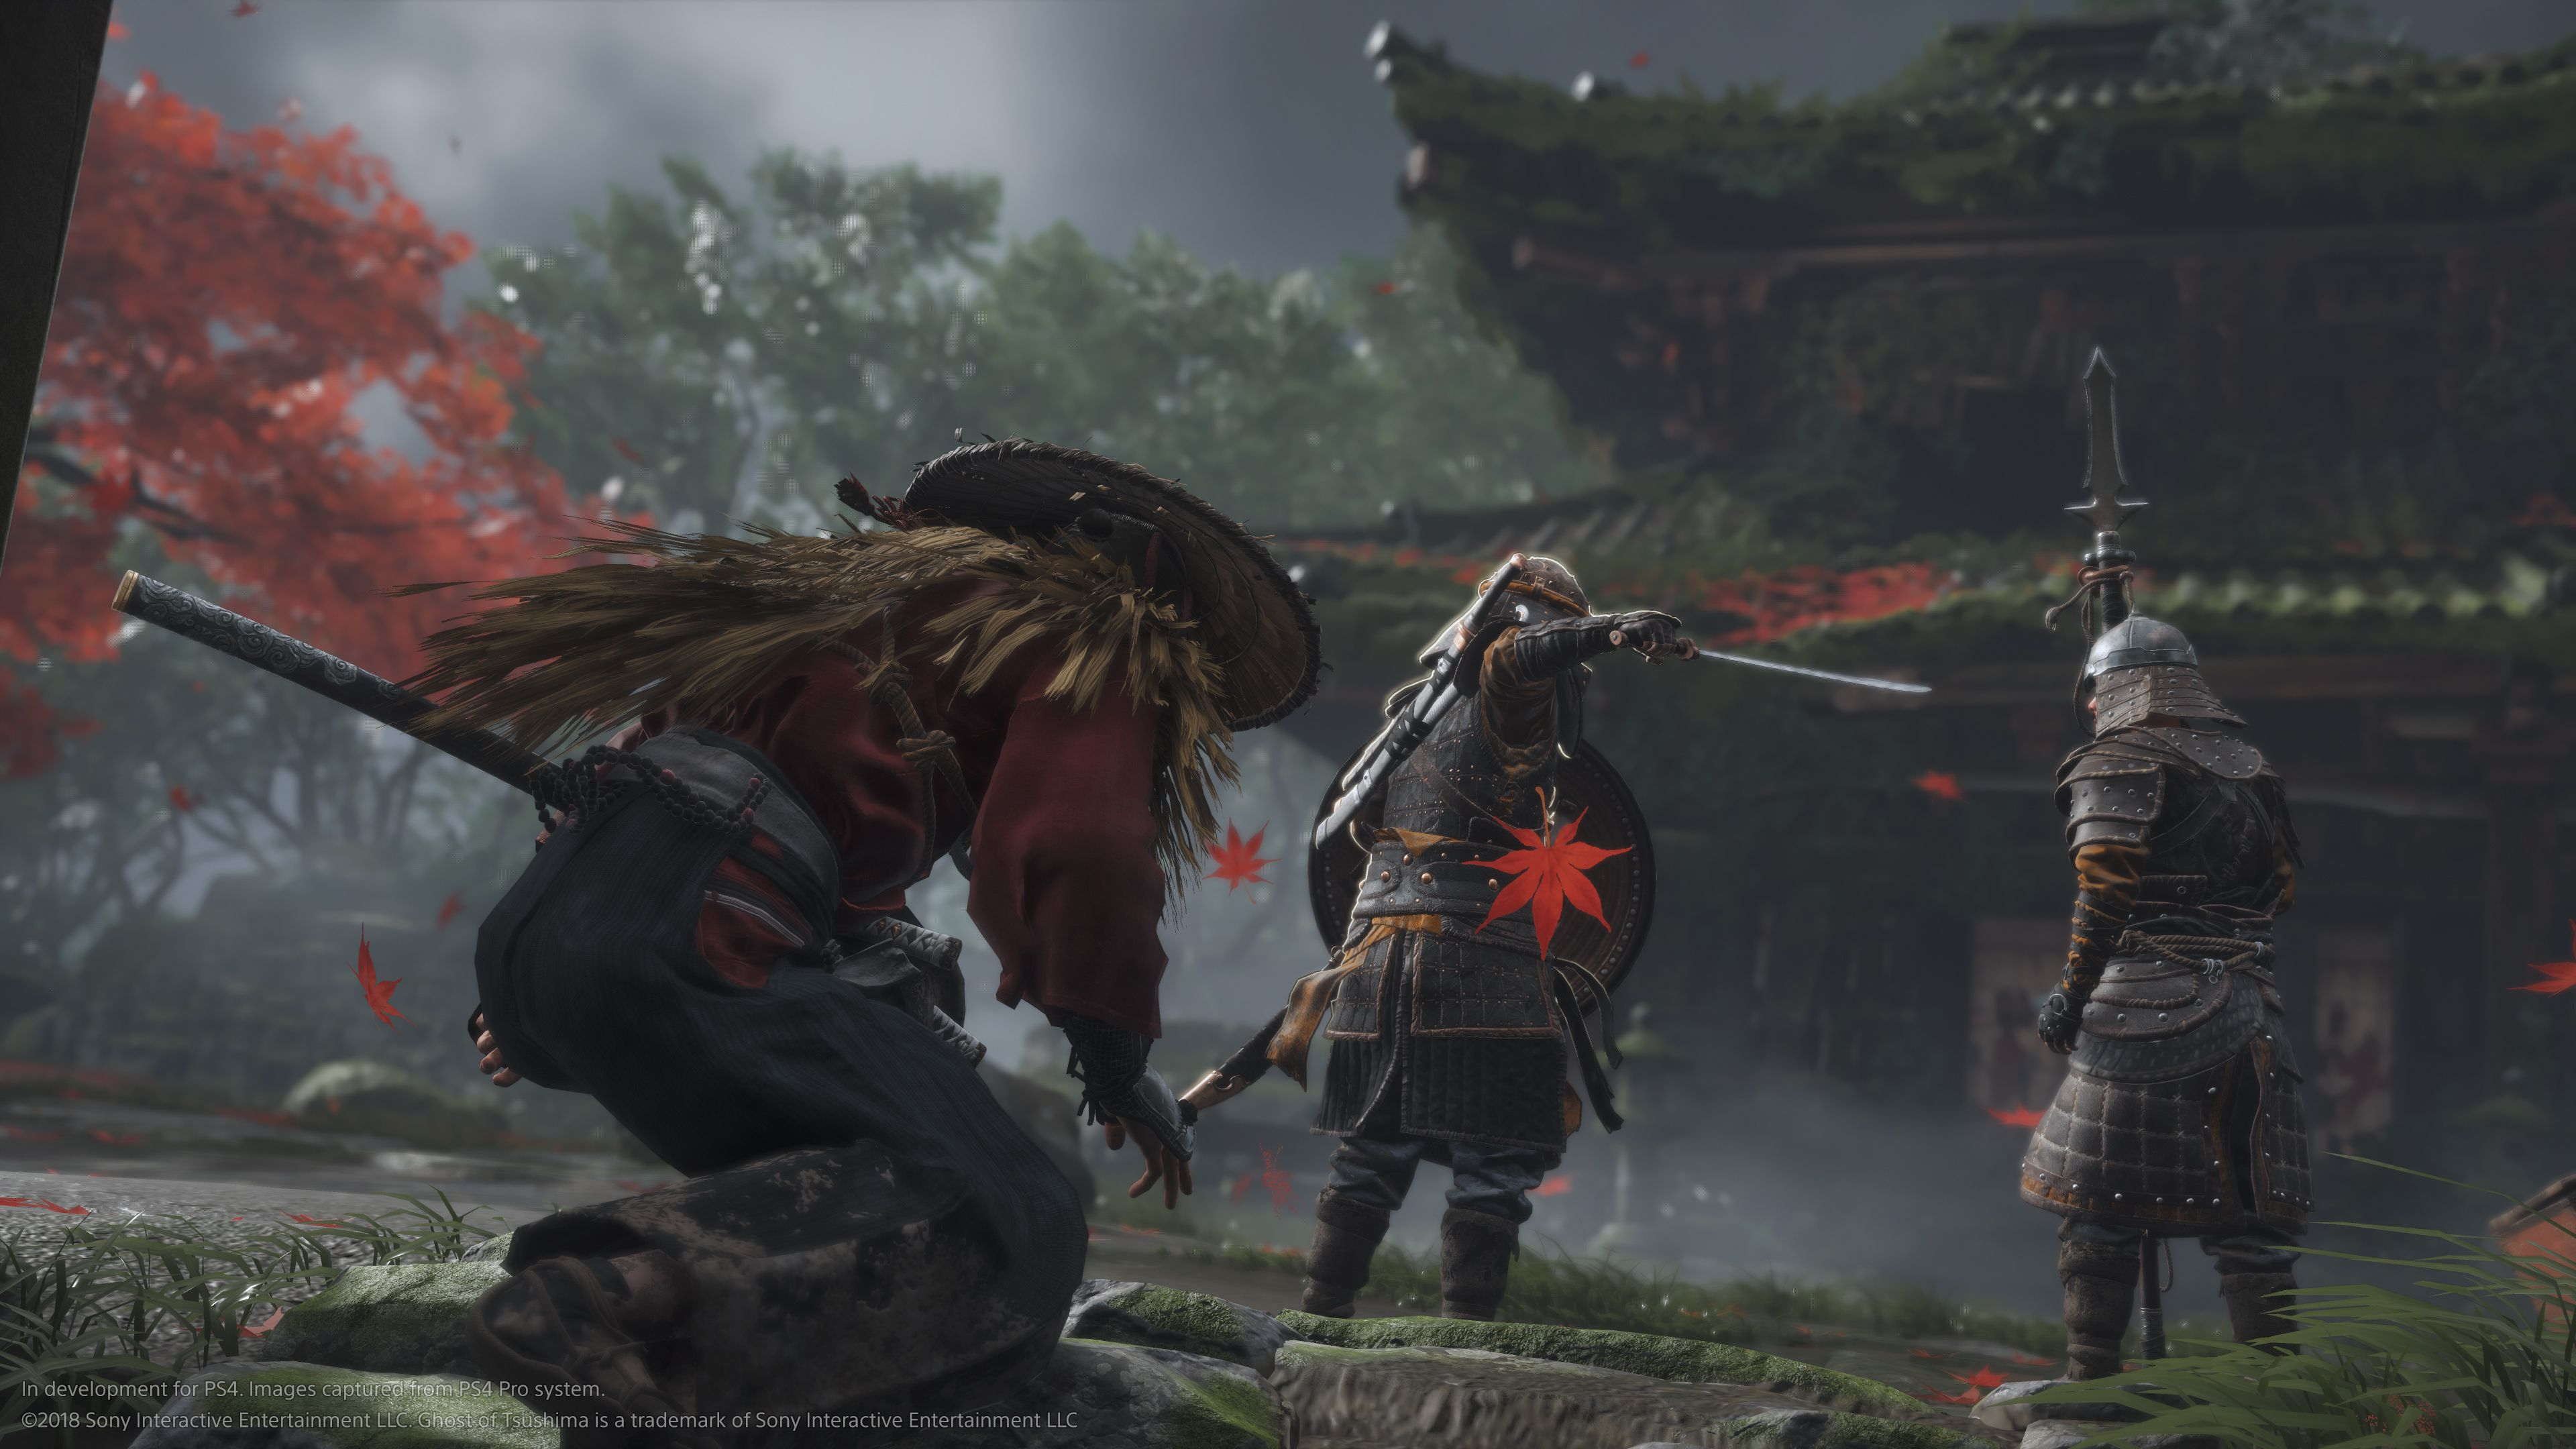 Sad Wallpaper Full Hd Ghost Of Tsushima S Aesthetic World Size And Protagonist